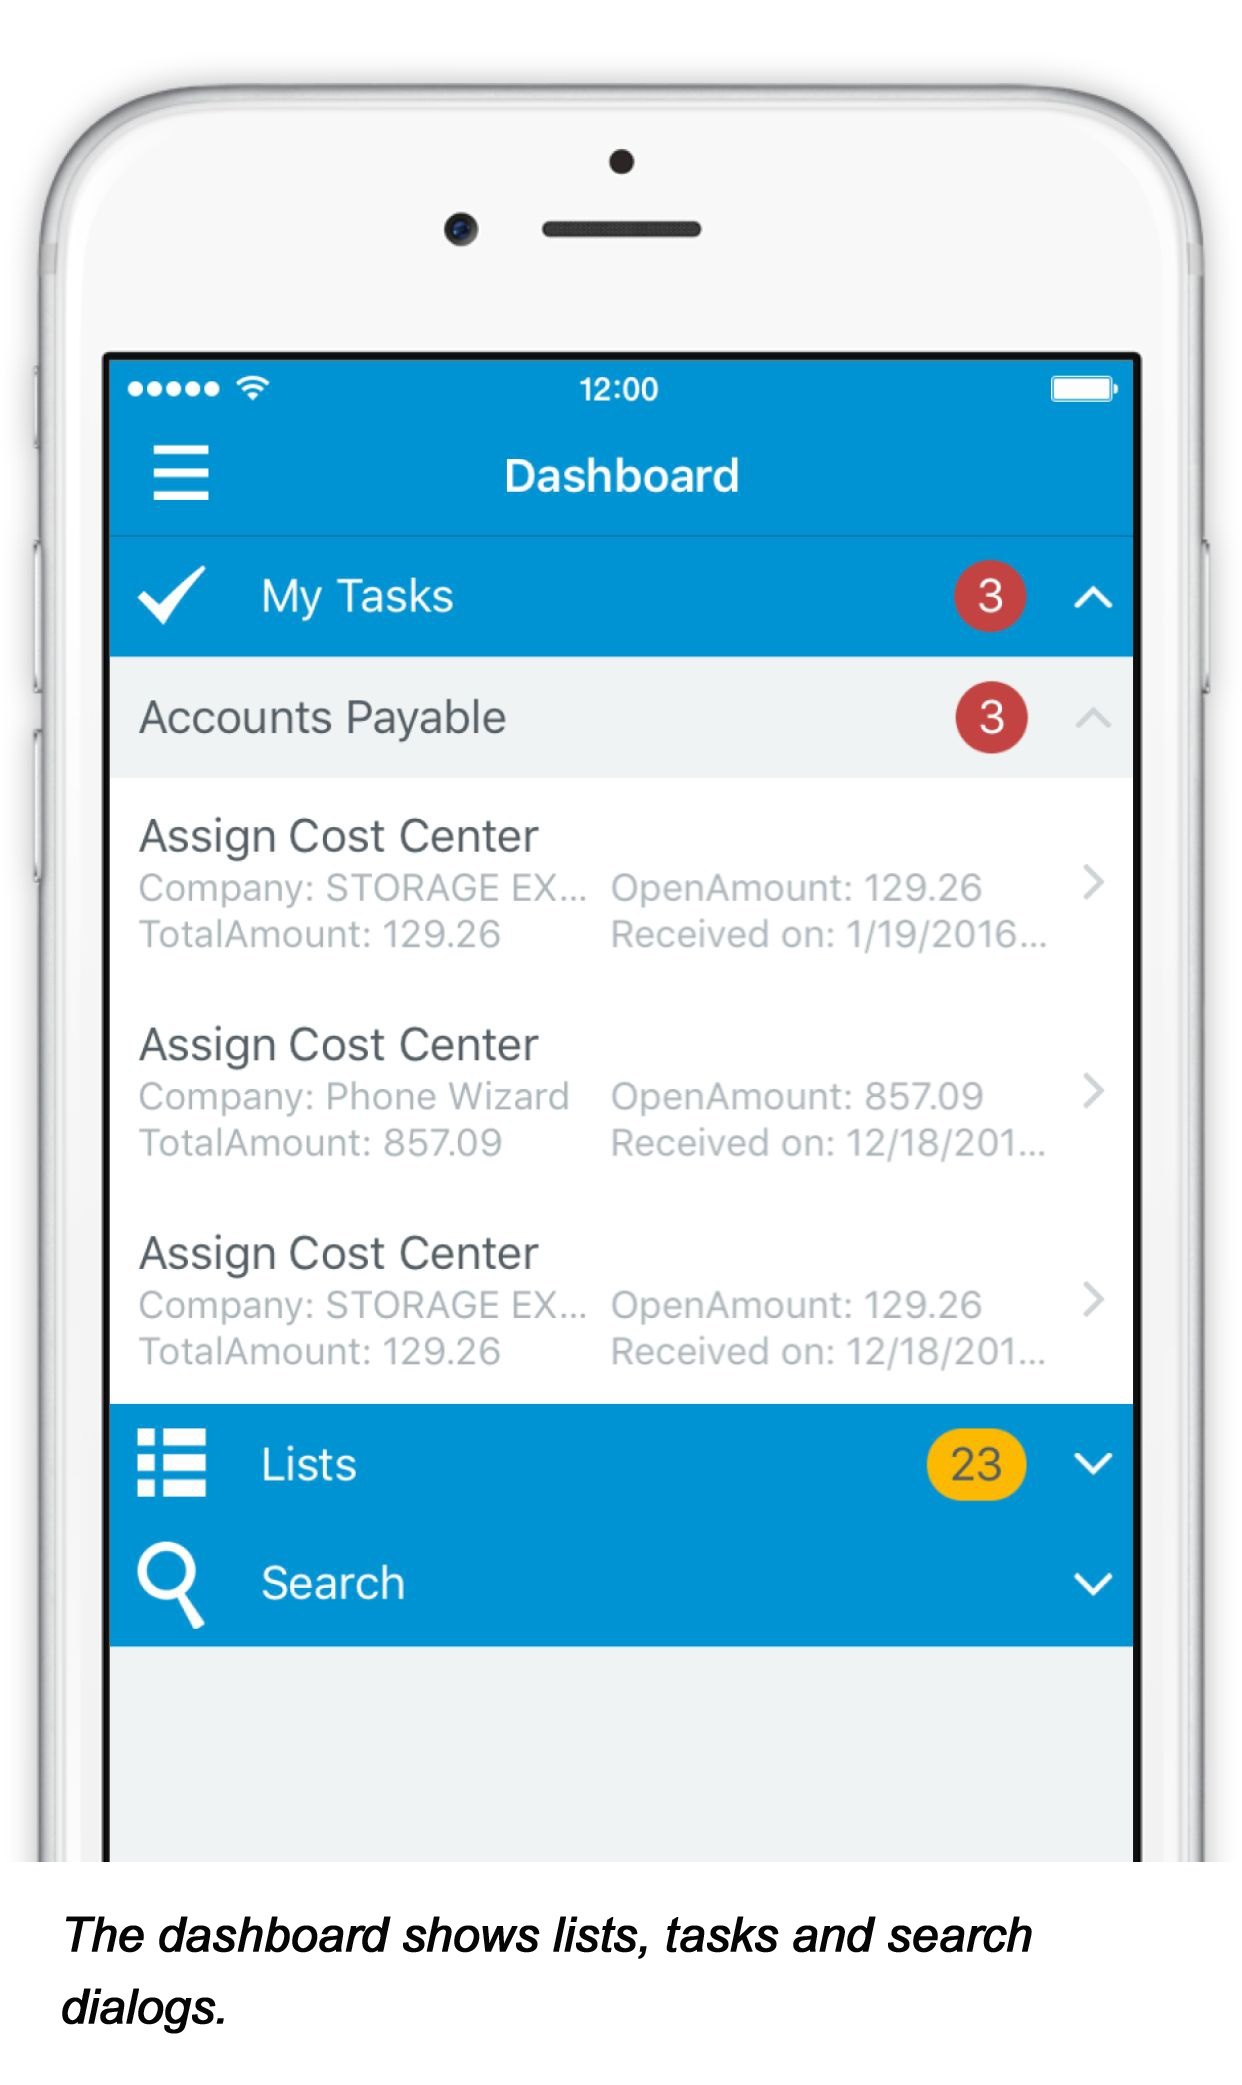 DocuWare_Mobile_Dashboard-1.jpg